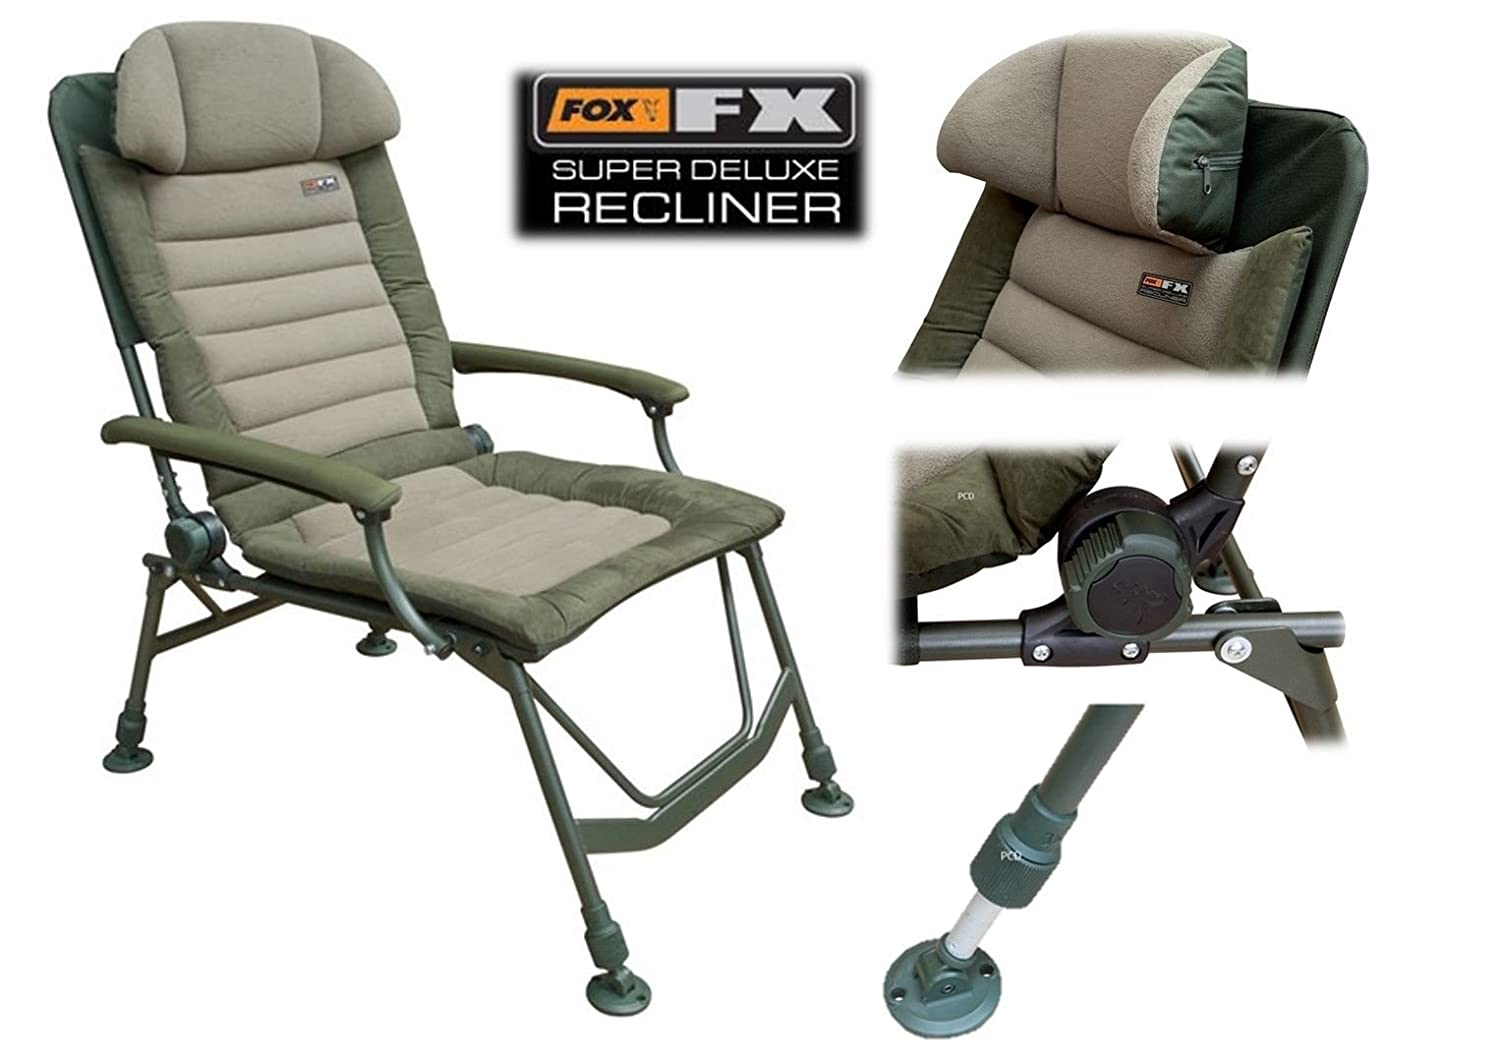 Admirable Chairs Bed Chairs Cbc047 Fox Fx Super Deluxe Recliner Machost Co Dining Chair Design Ideas Machostcouk